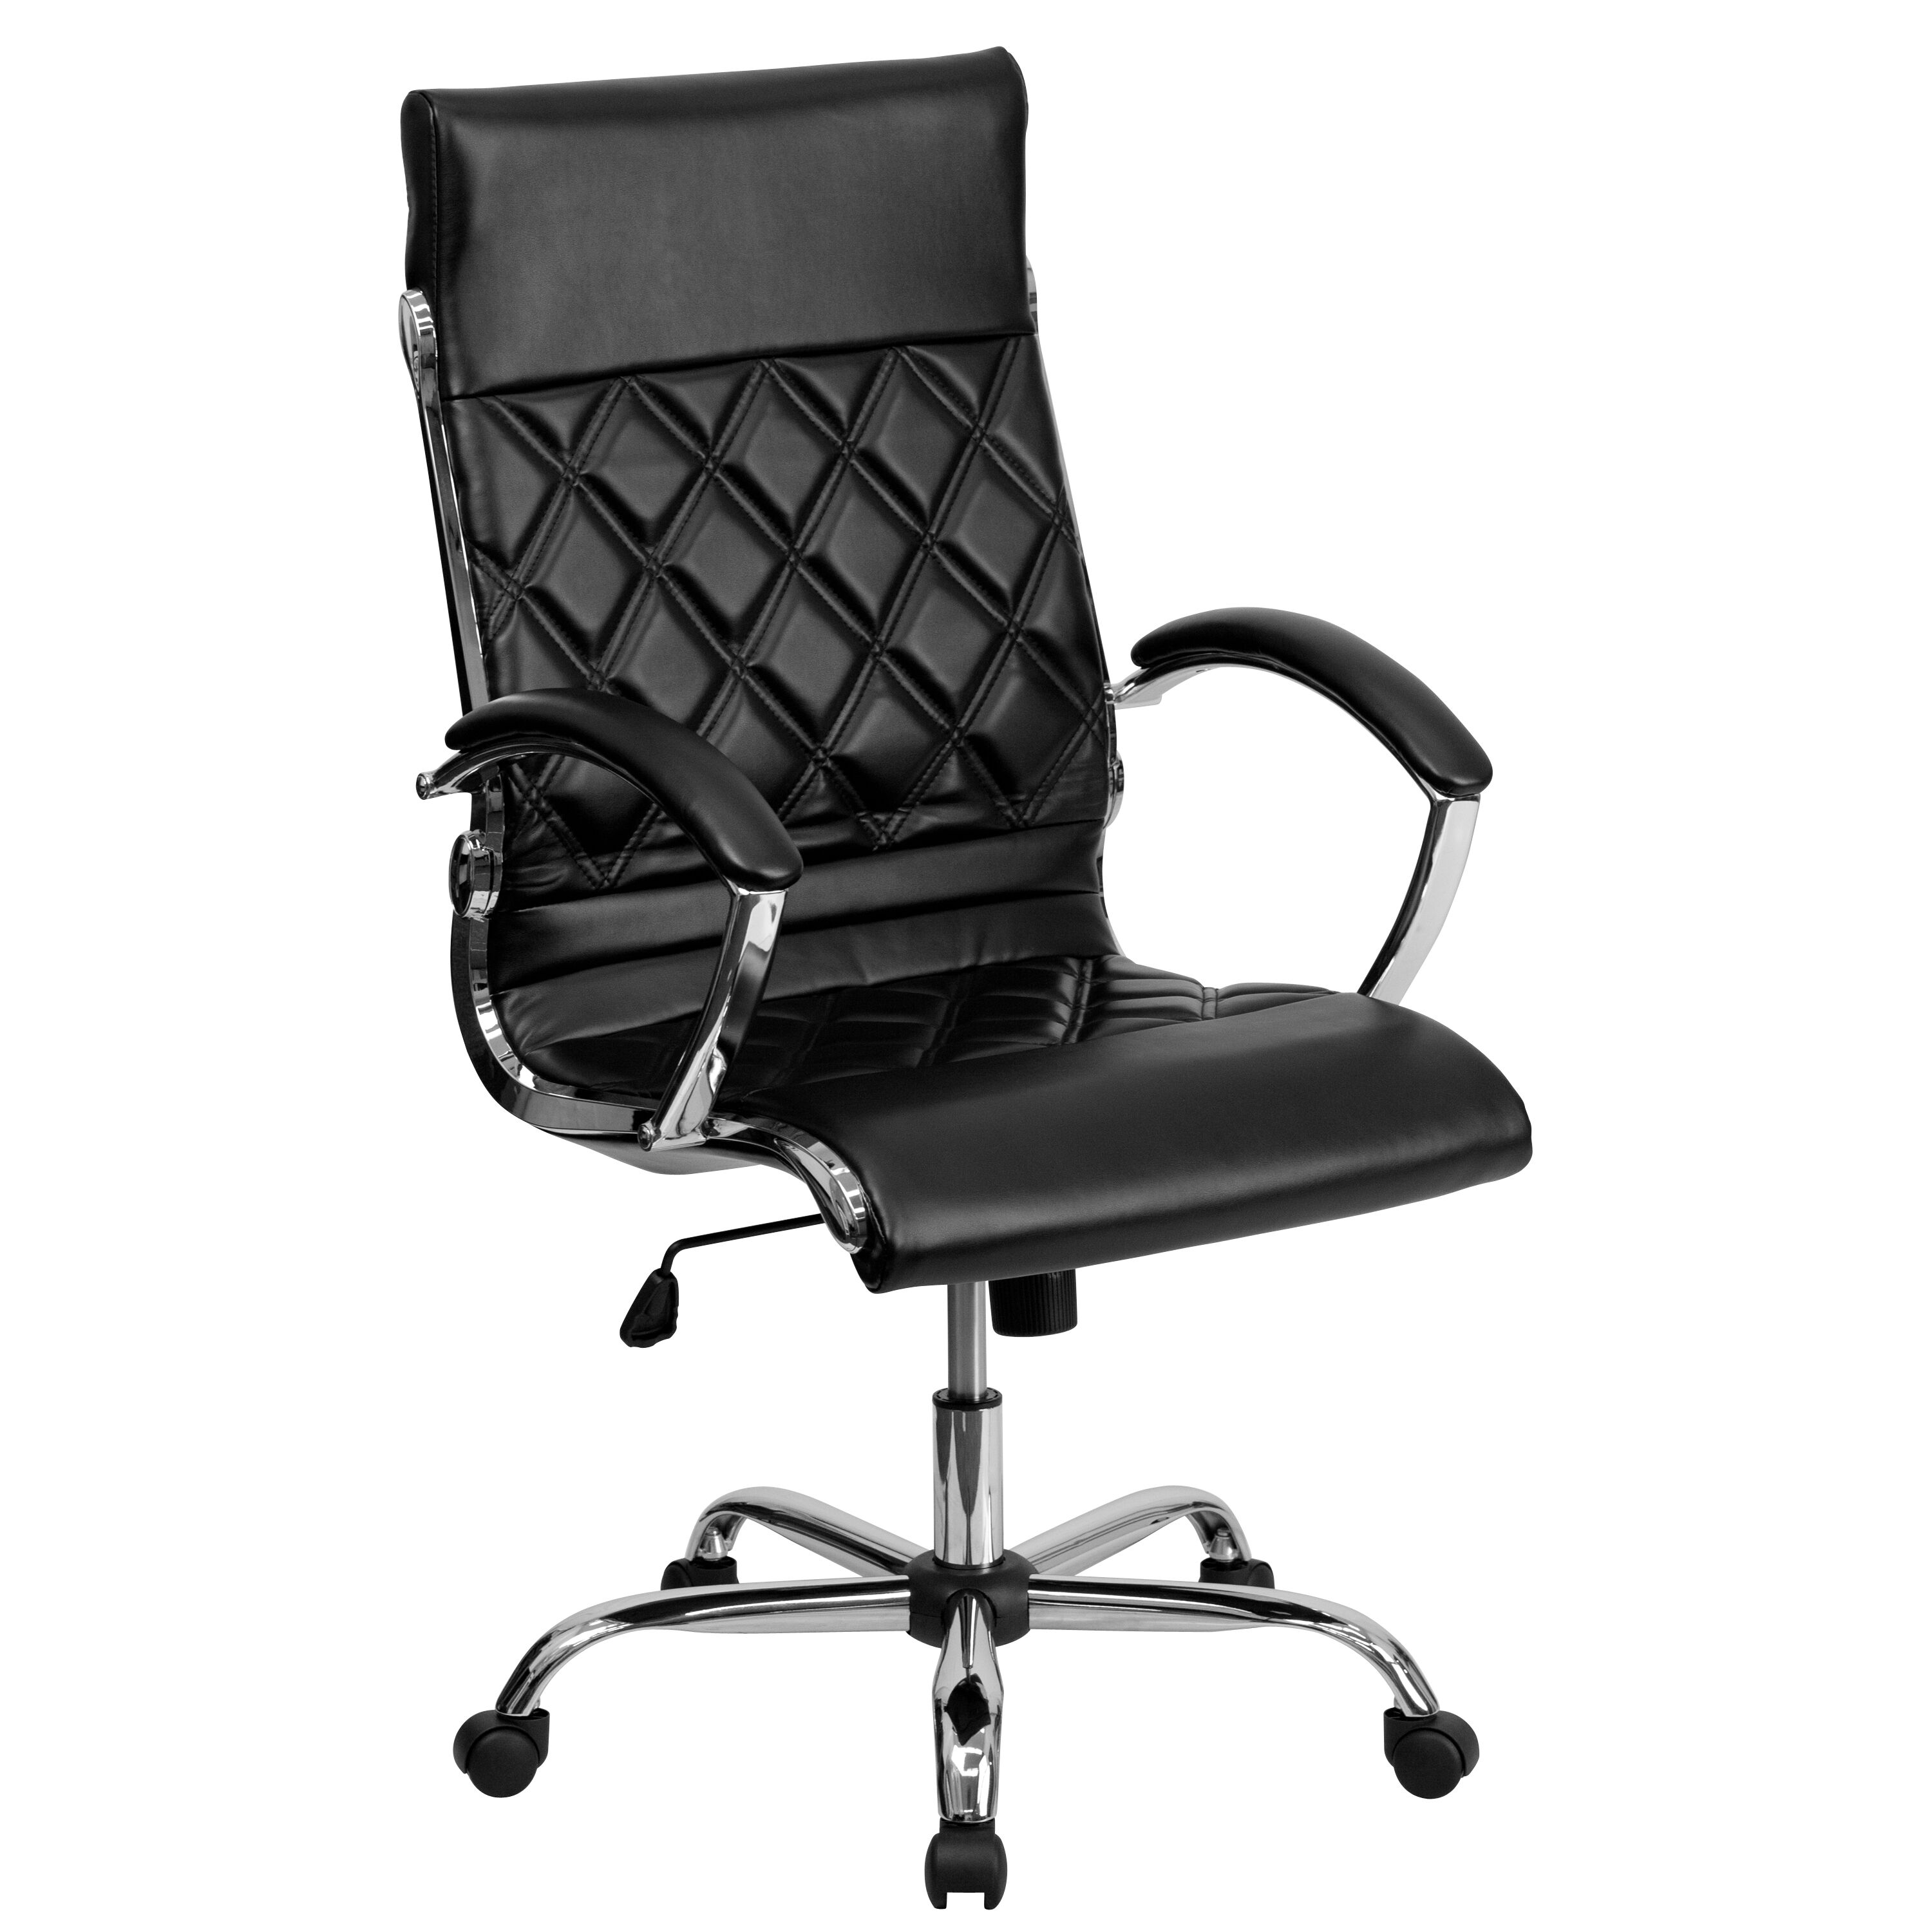 quilted swivel chair felt christmas covers black high back leather go 1297h bk gg our designer executive office with chrome base and arms